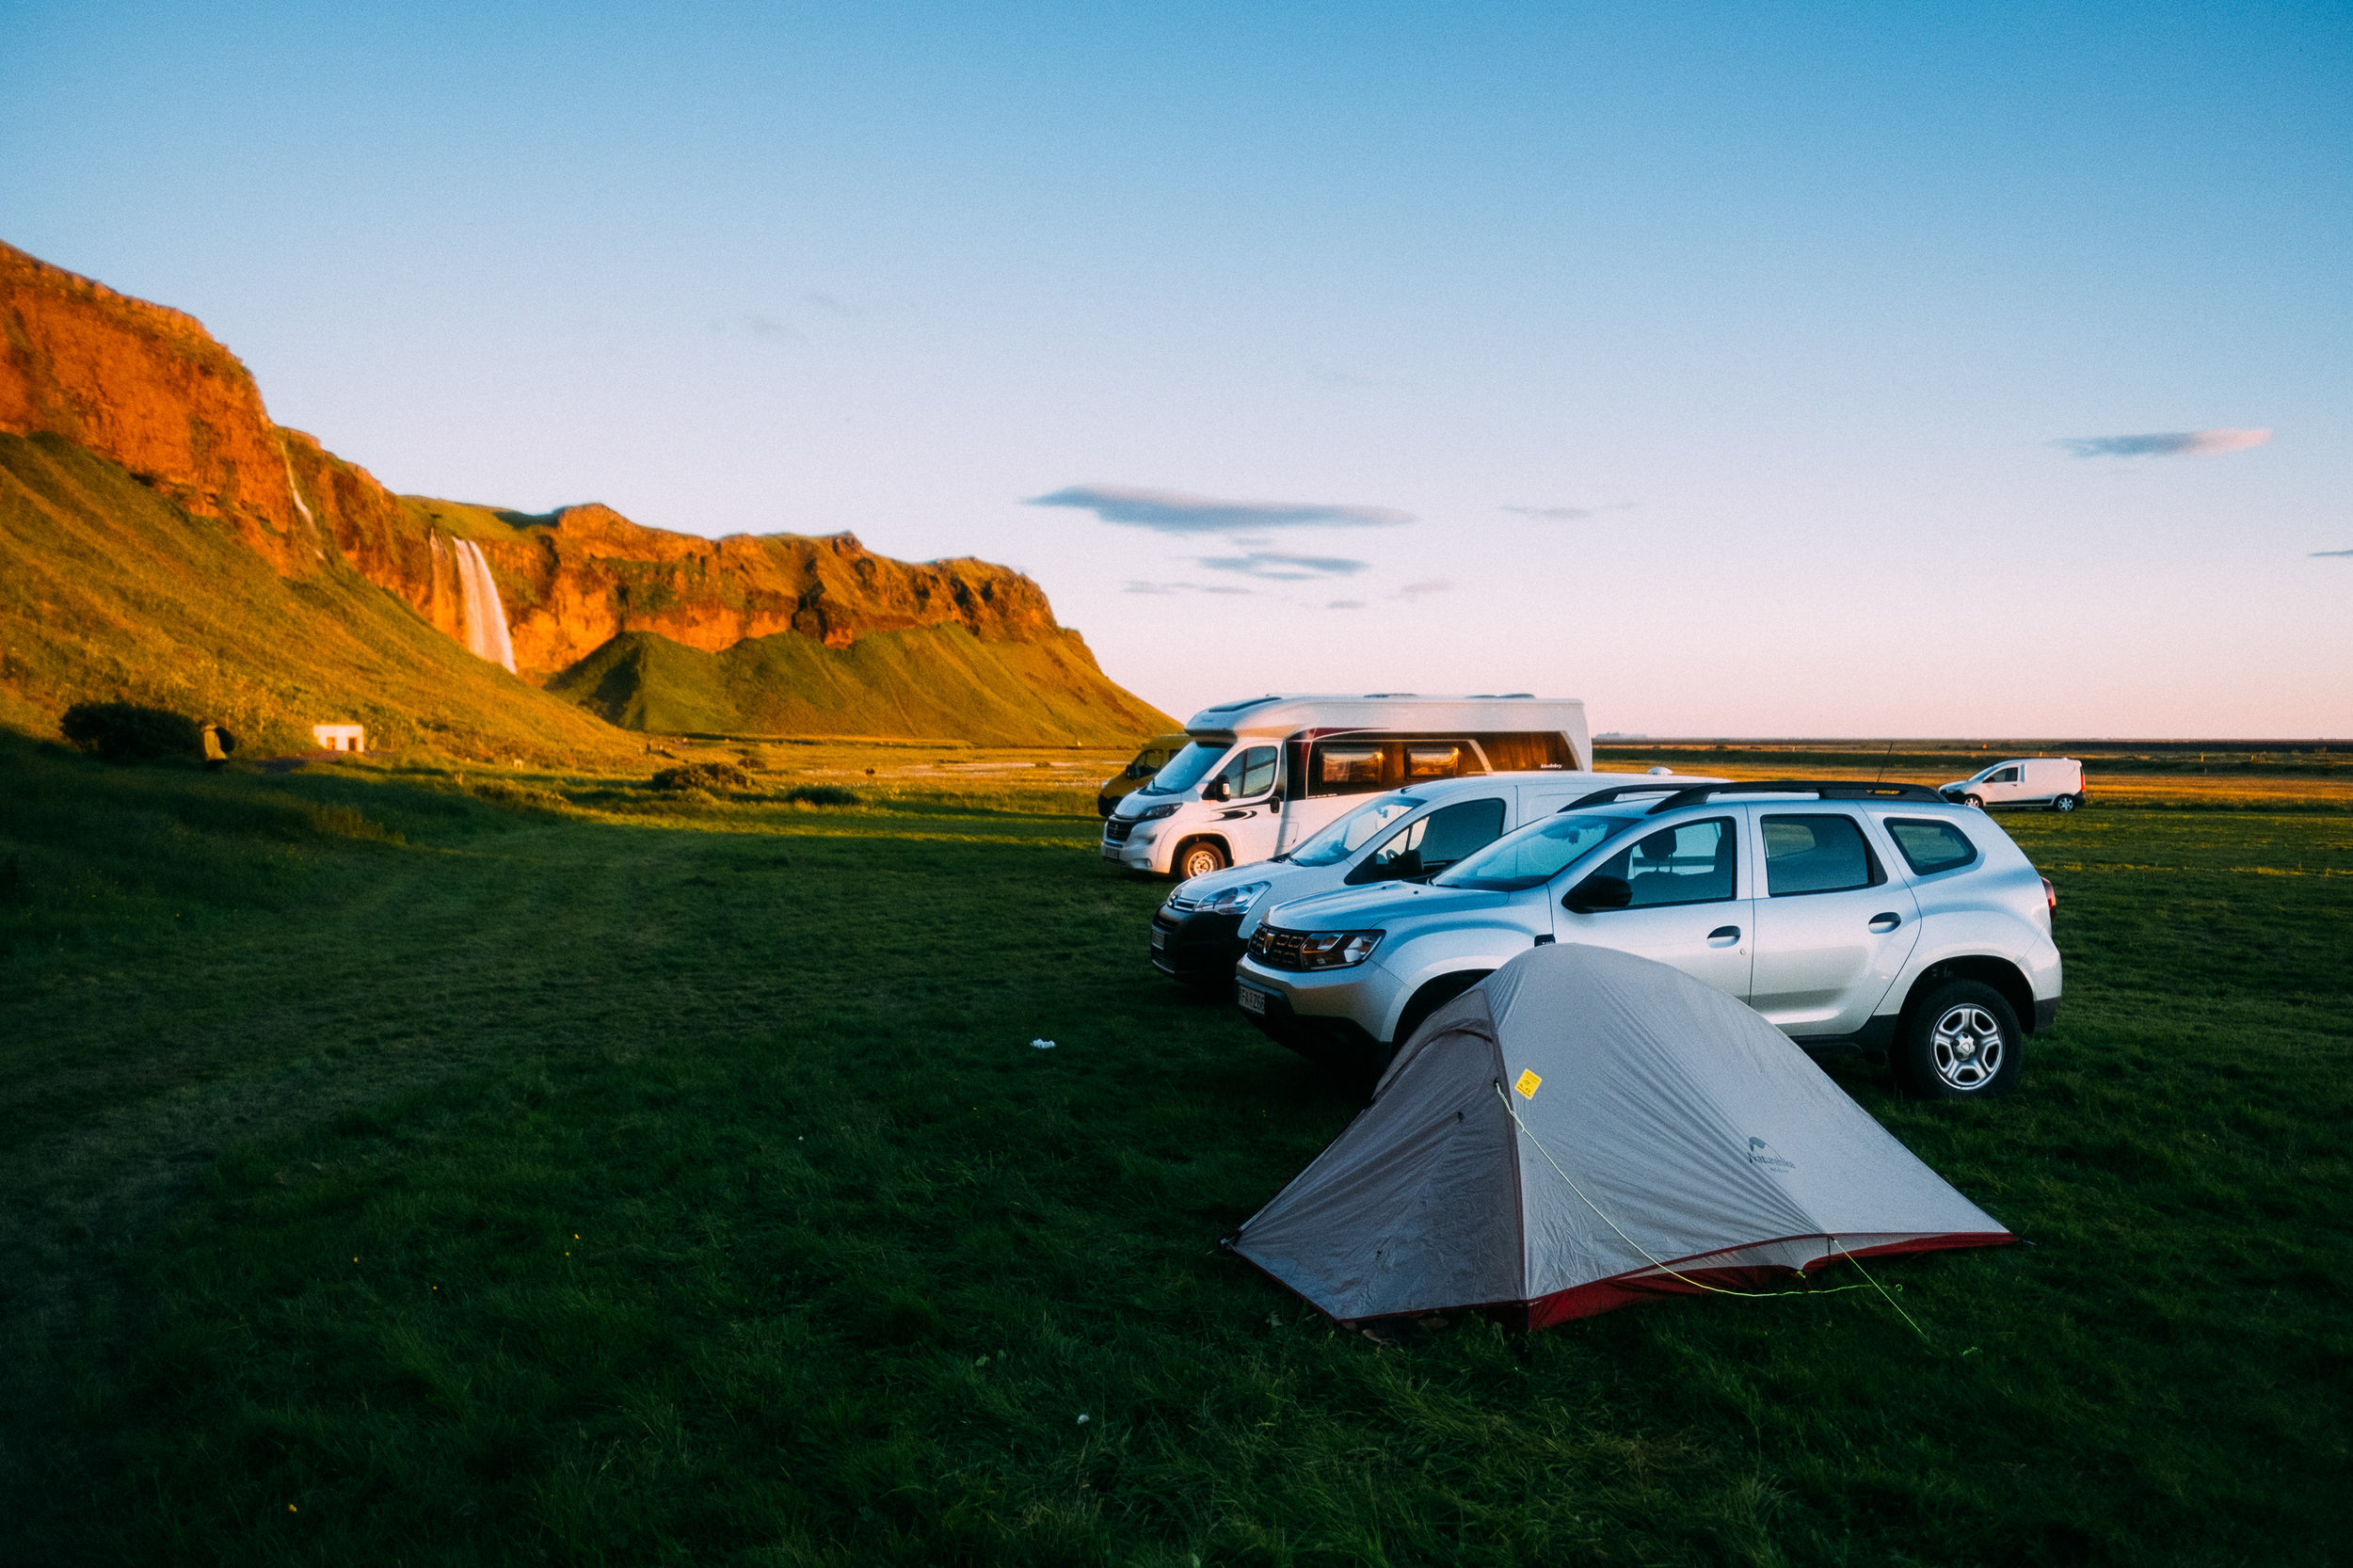 The campsite near Seljalandsfoss